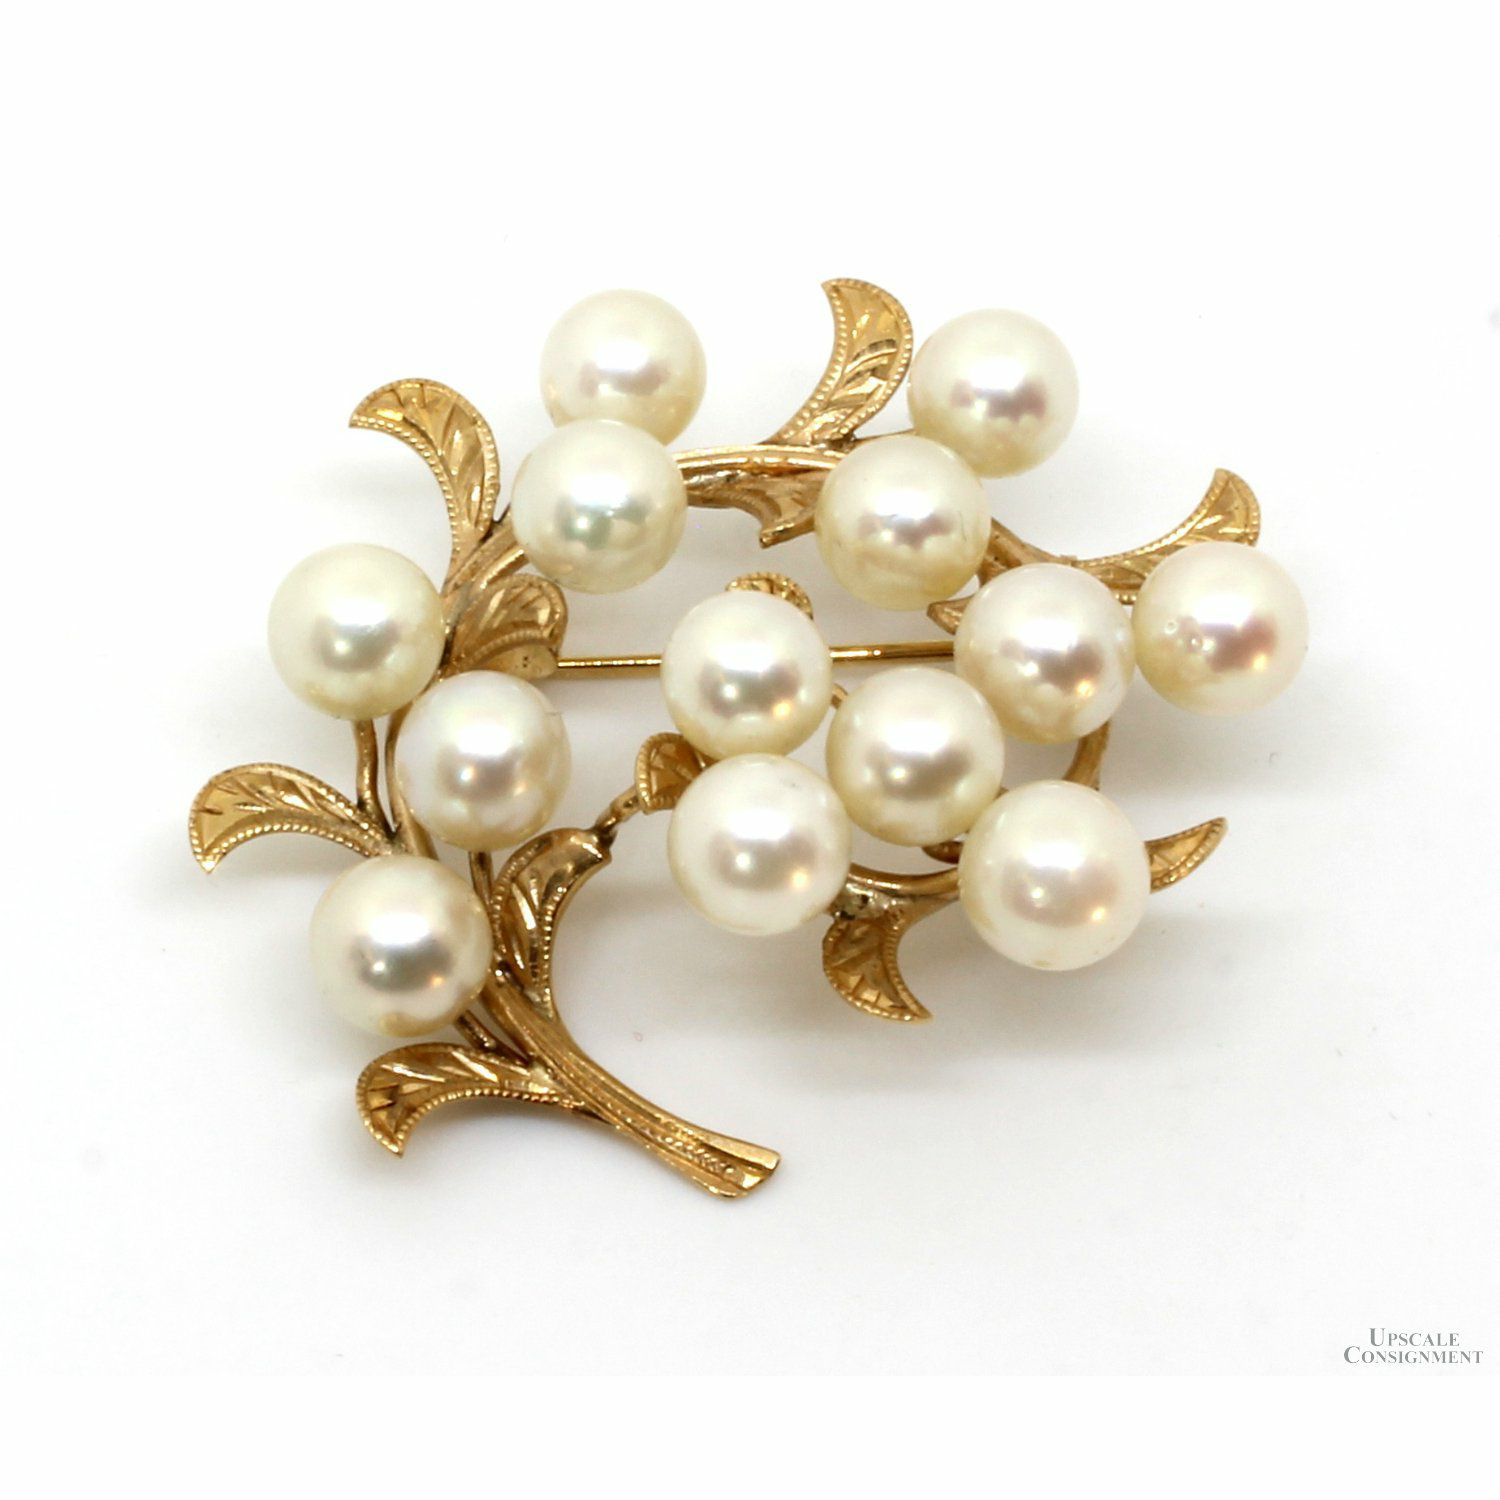 14K-Gold-Akoya-Pearl-Botanical-Design-Brooch_86041A.jpg